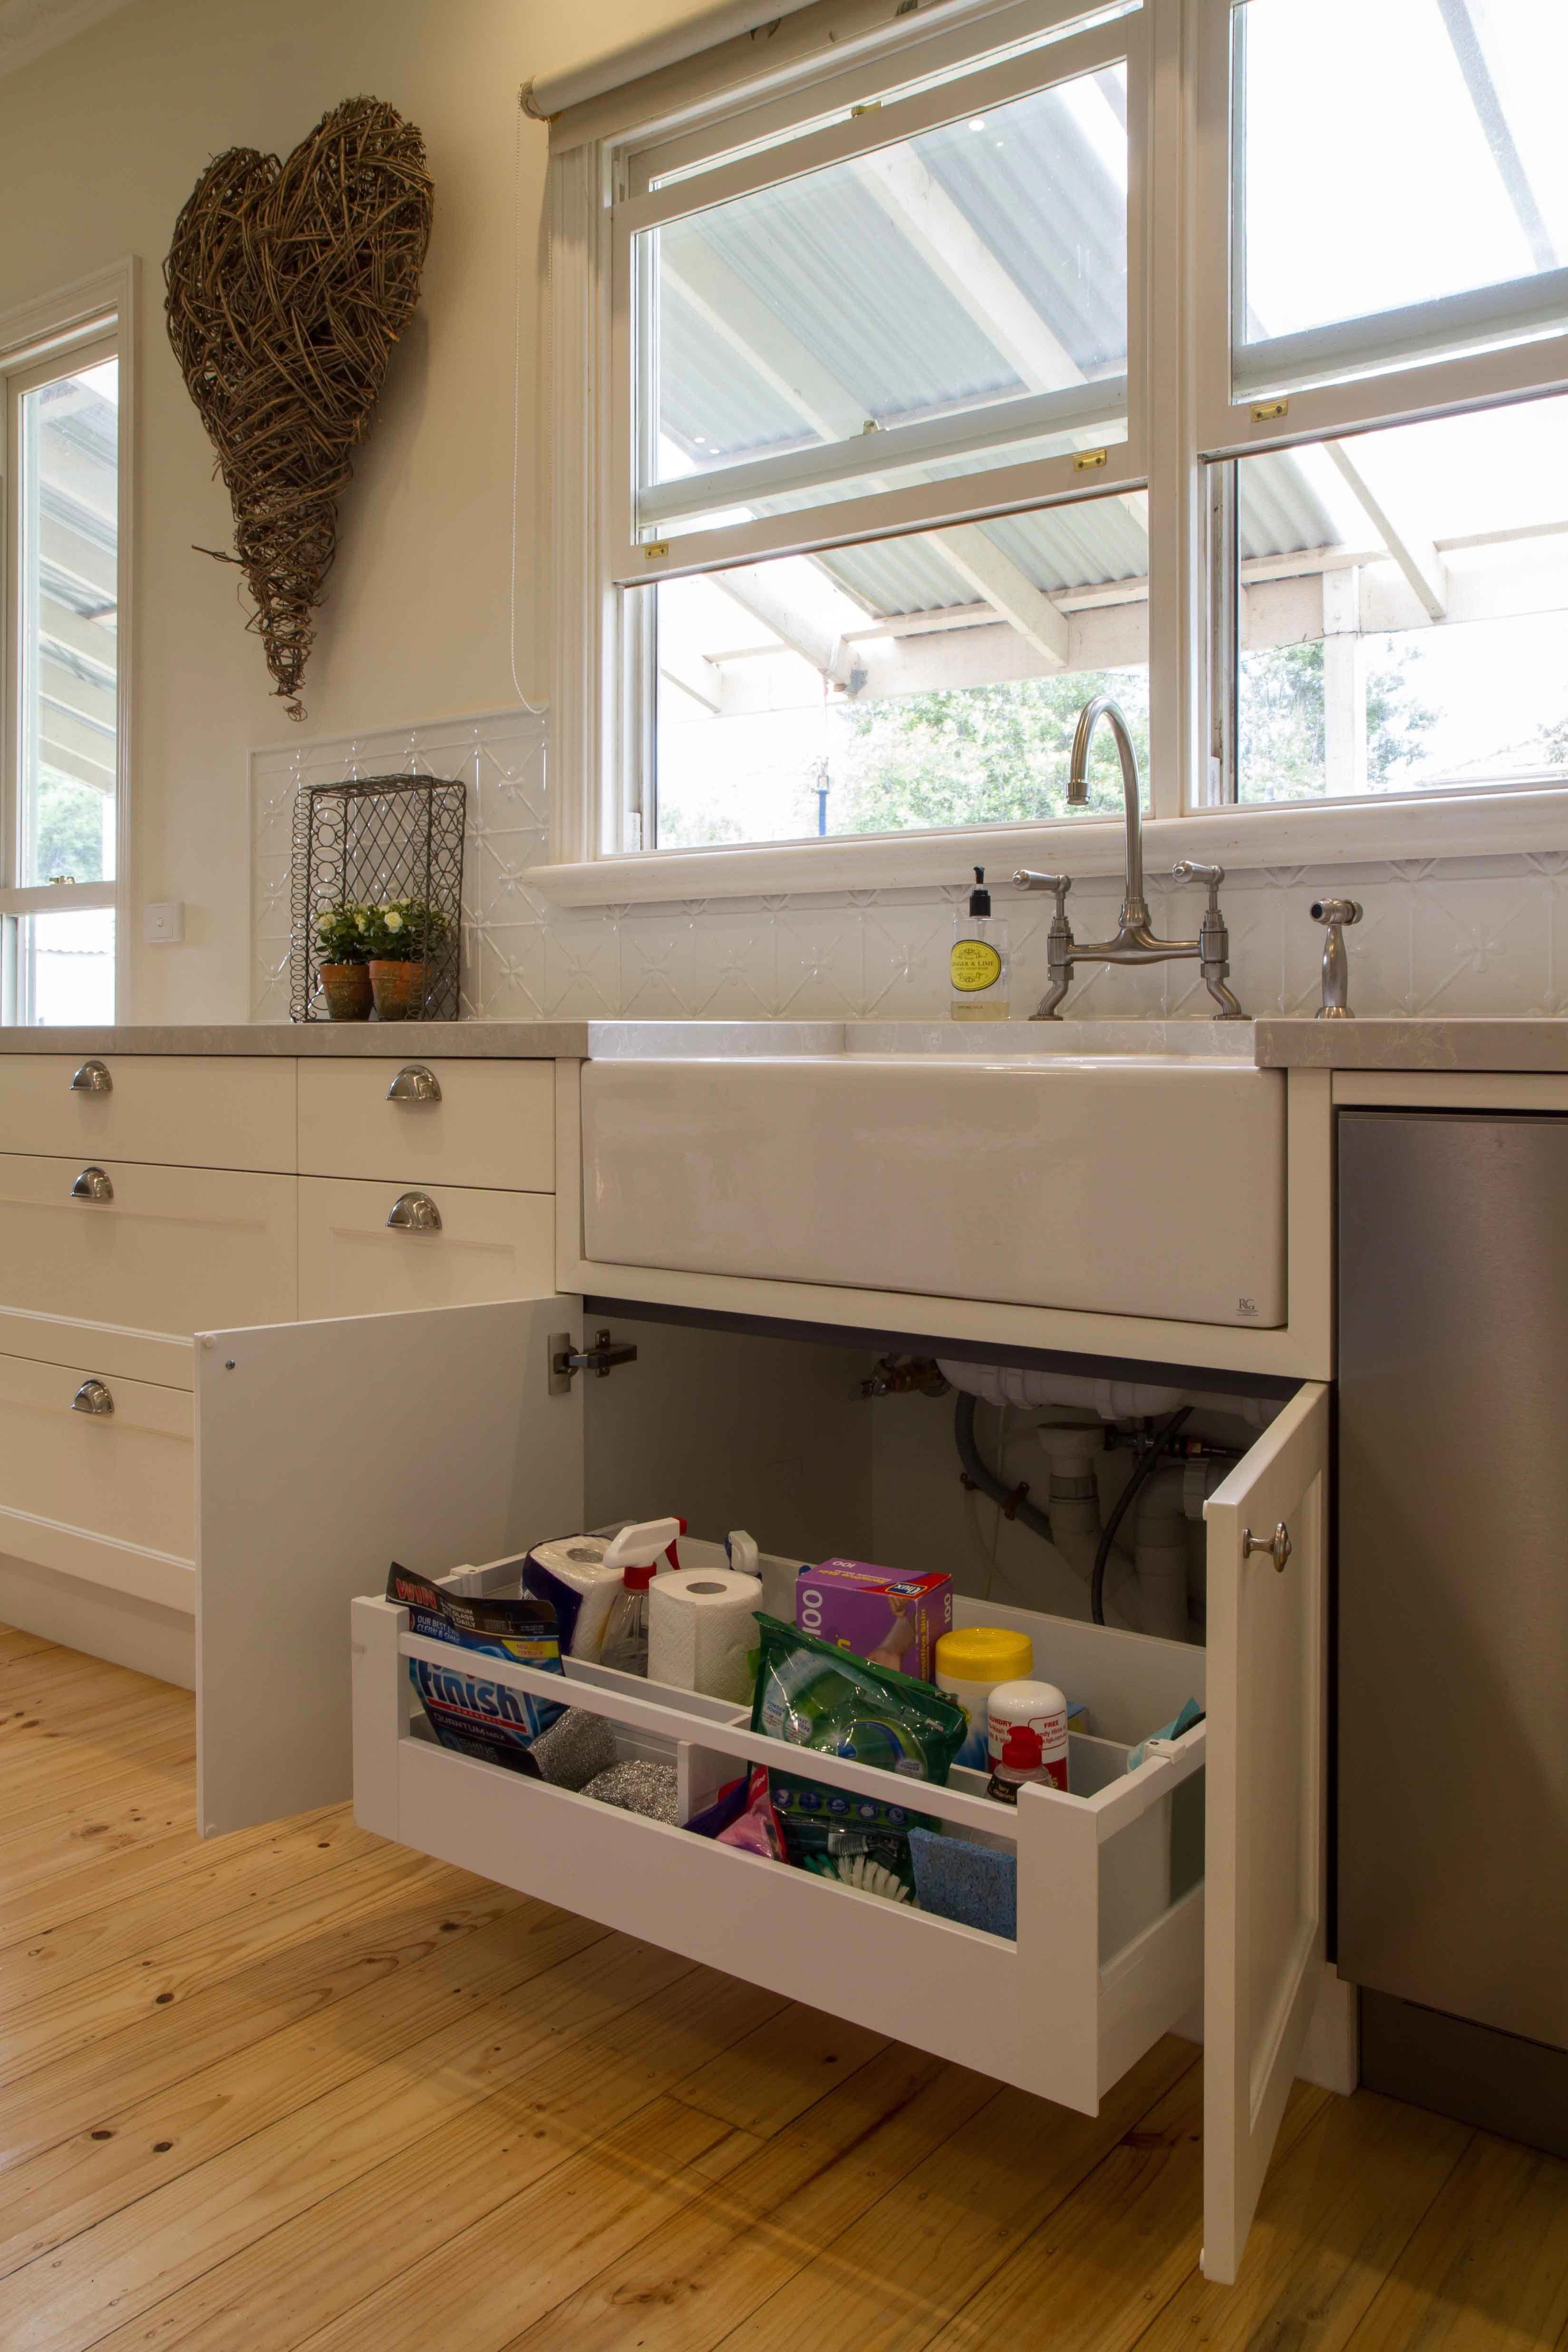 10x10 Kitchen Remodel: Pin On Kitchen Remodeling